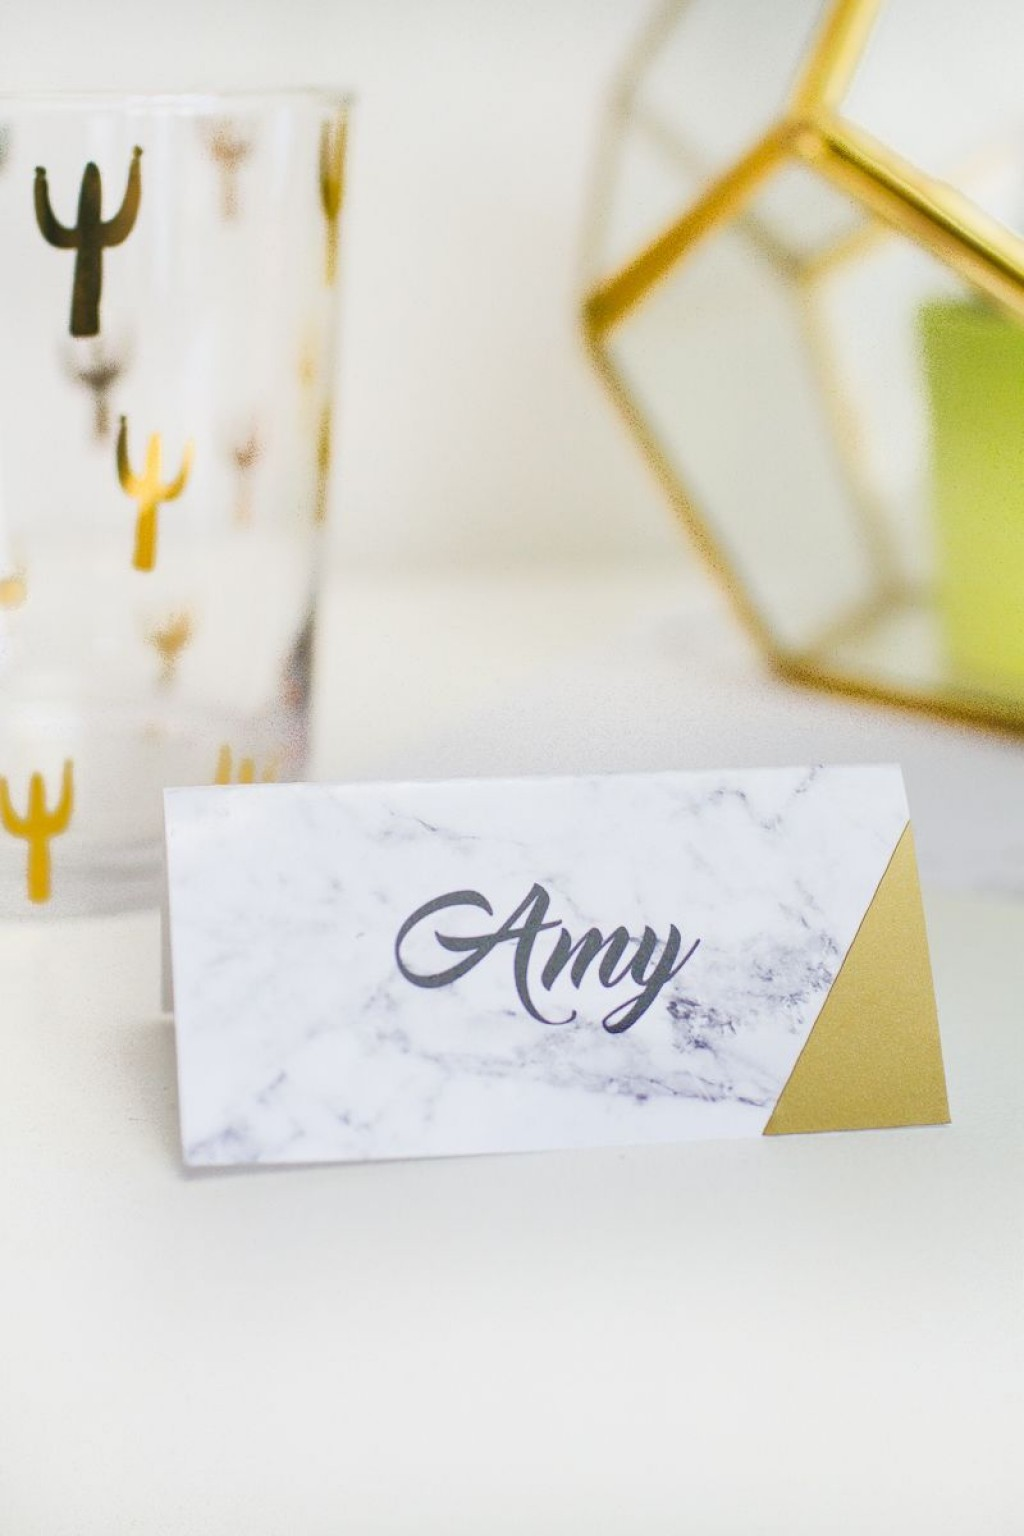 001 Beautiful Free Table Name Place Card Template Sample  PlacementLarge